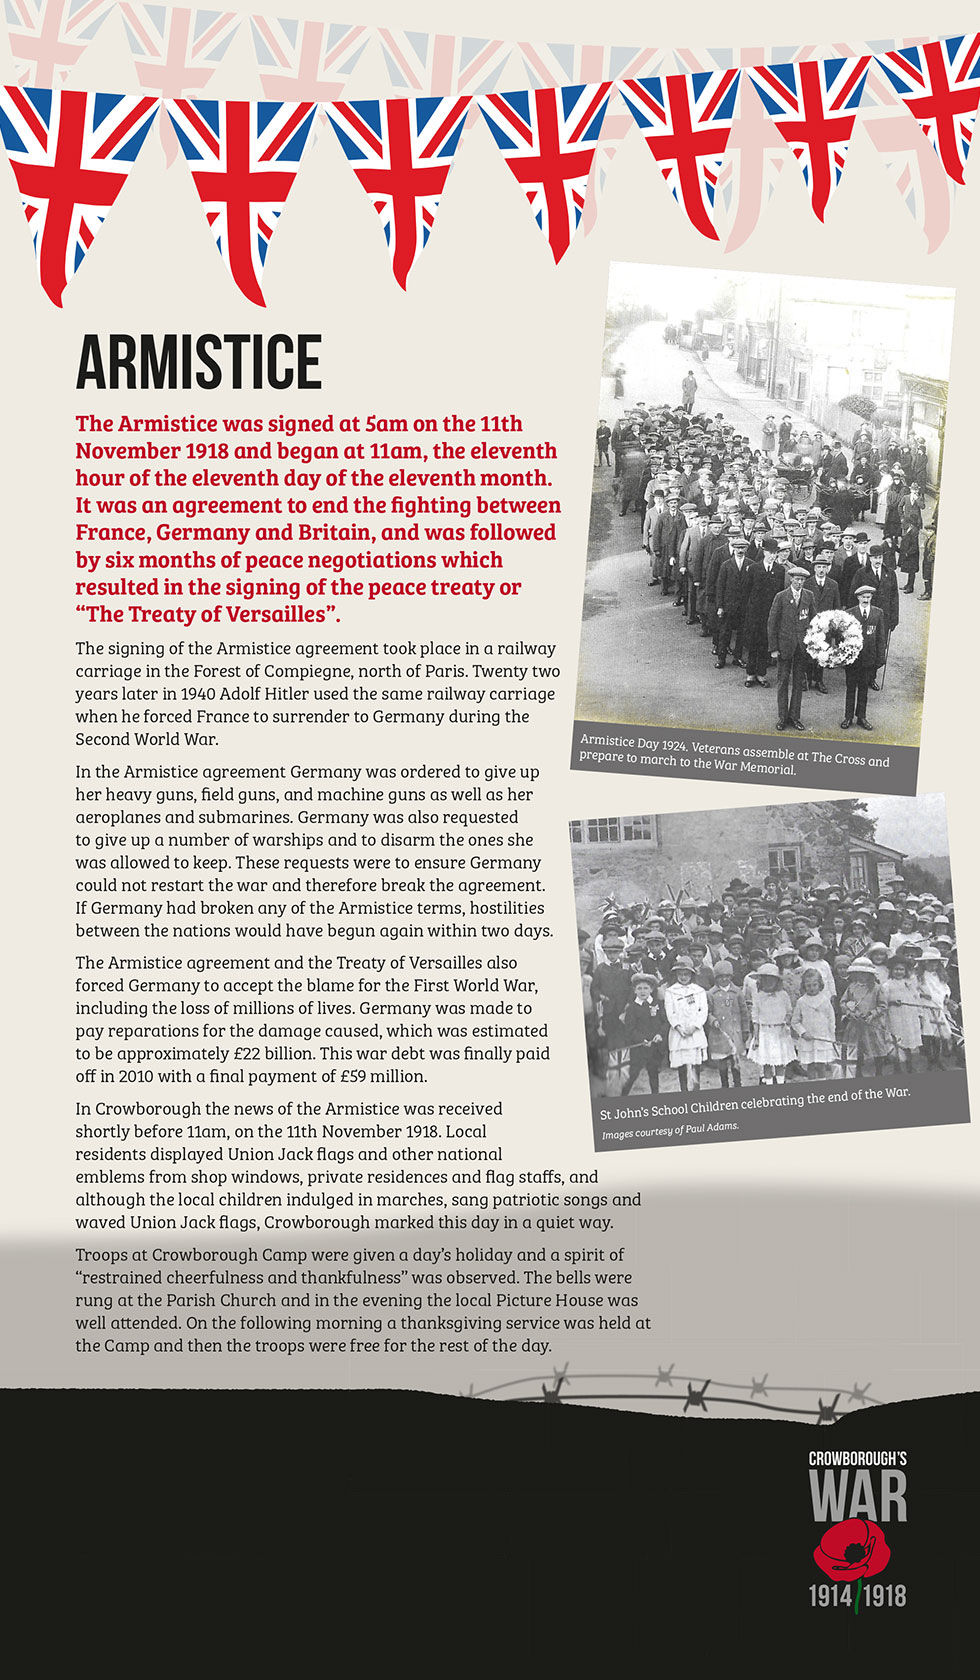 Crowborough's War Exhibition Armistice